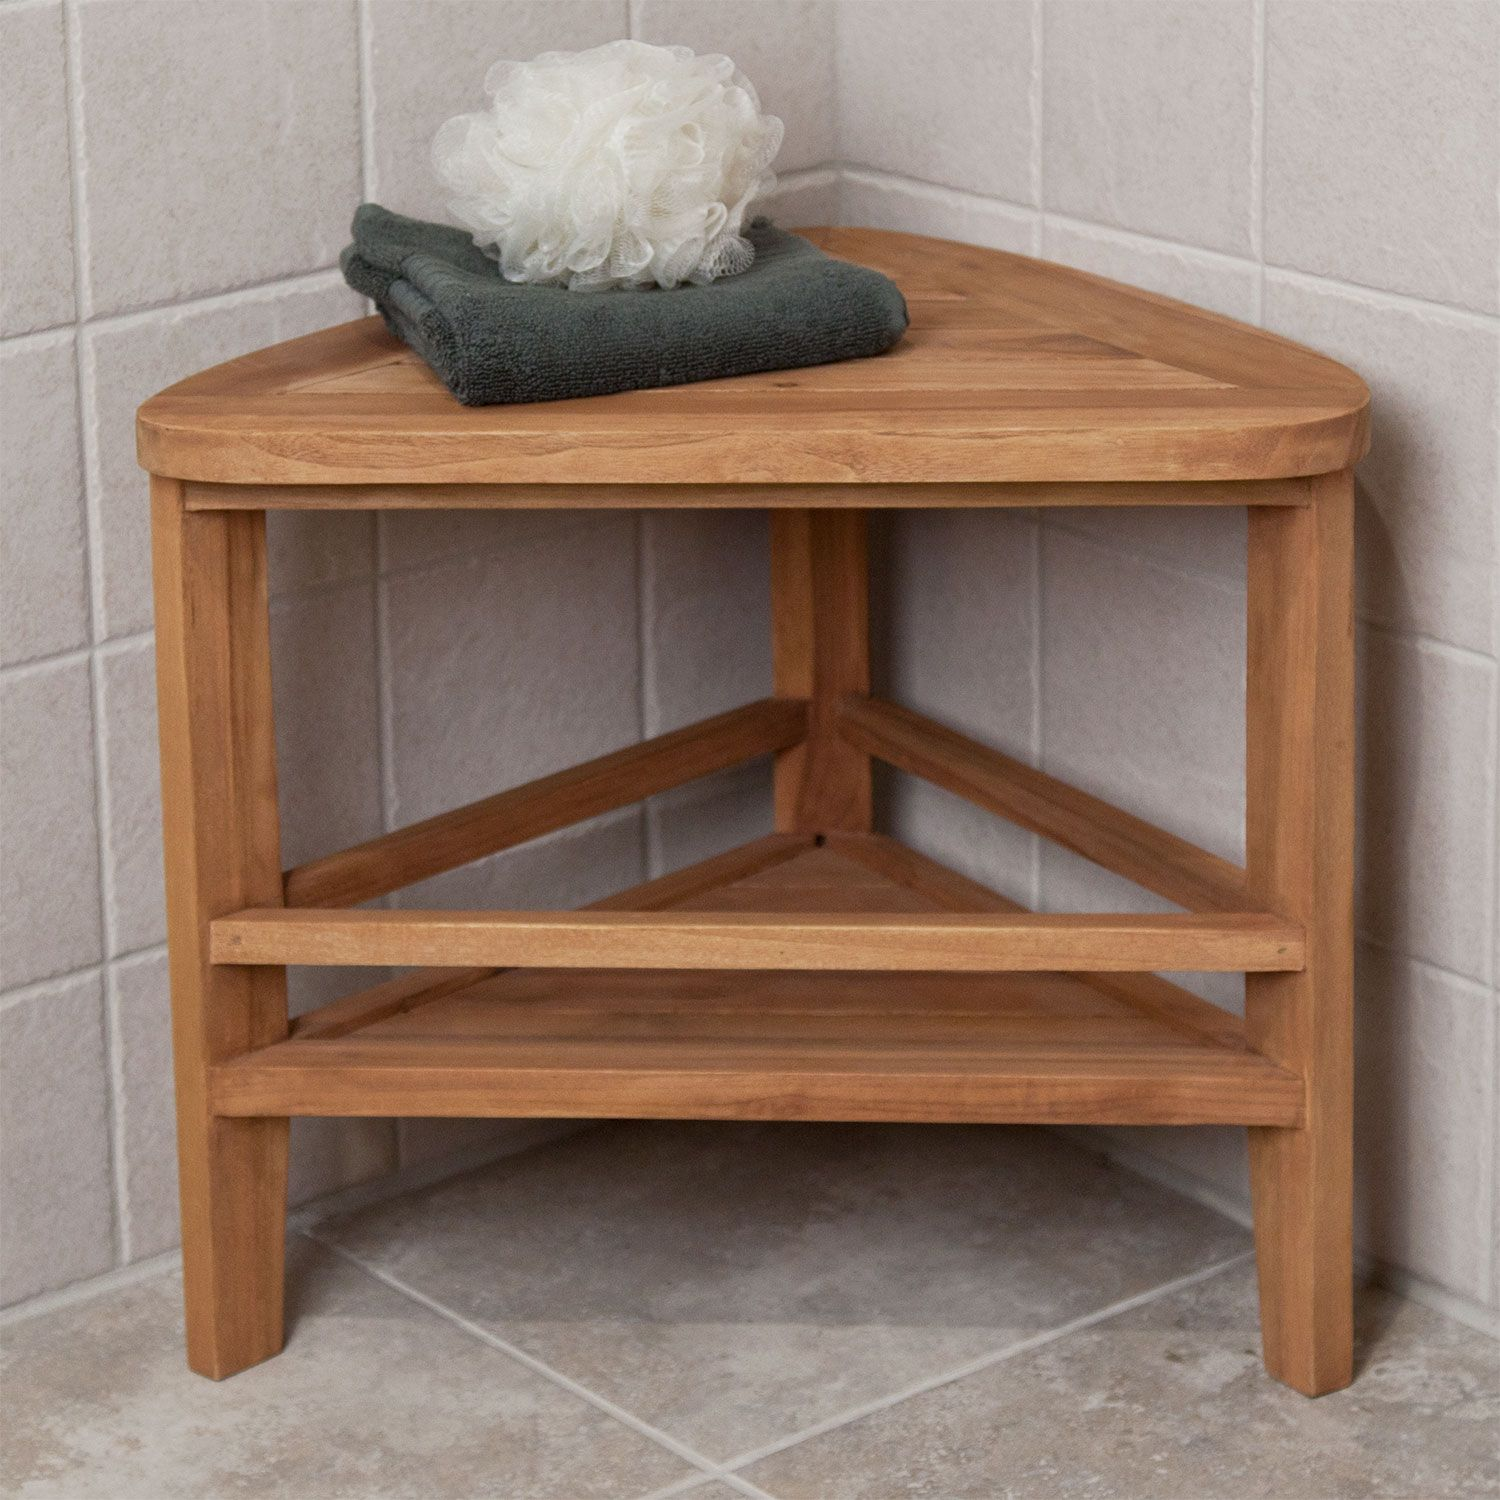 Teak Corner Shower Stool | Tile | Pinterest | Teak, Stools and Corner